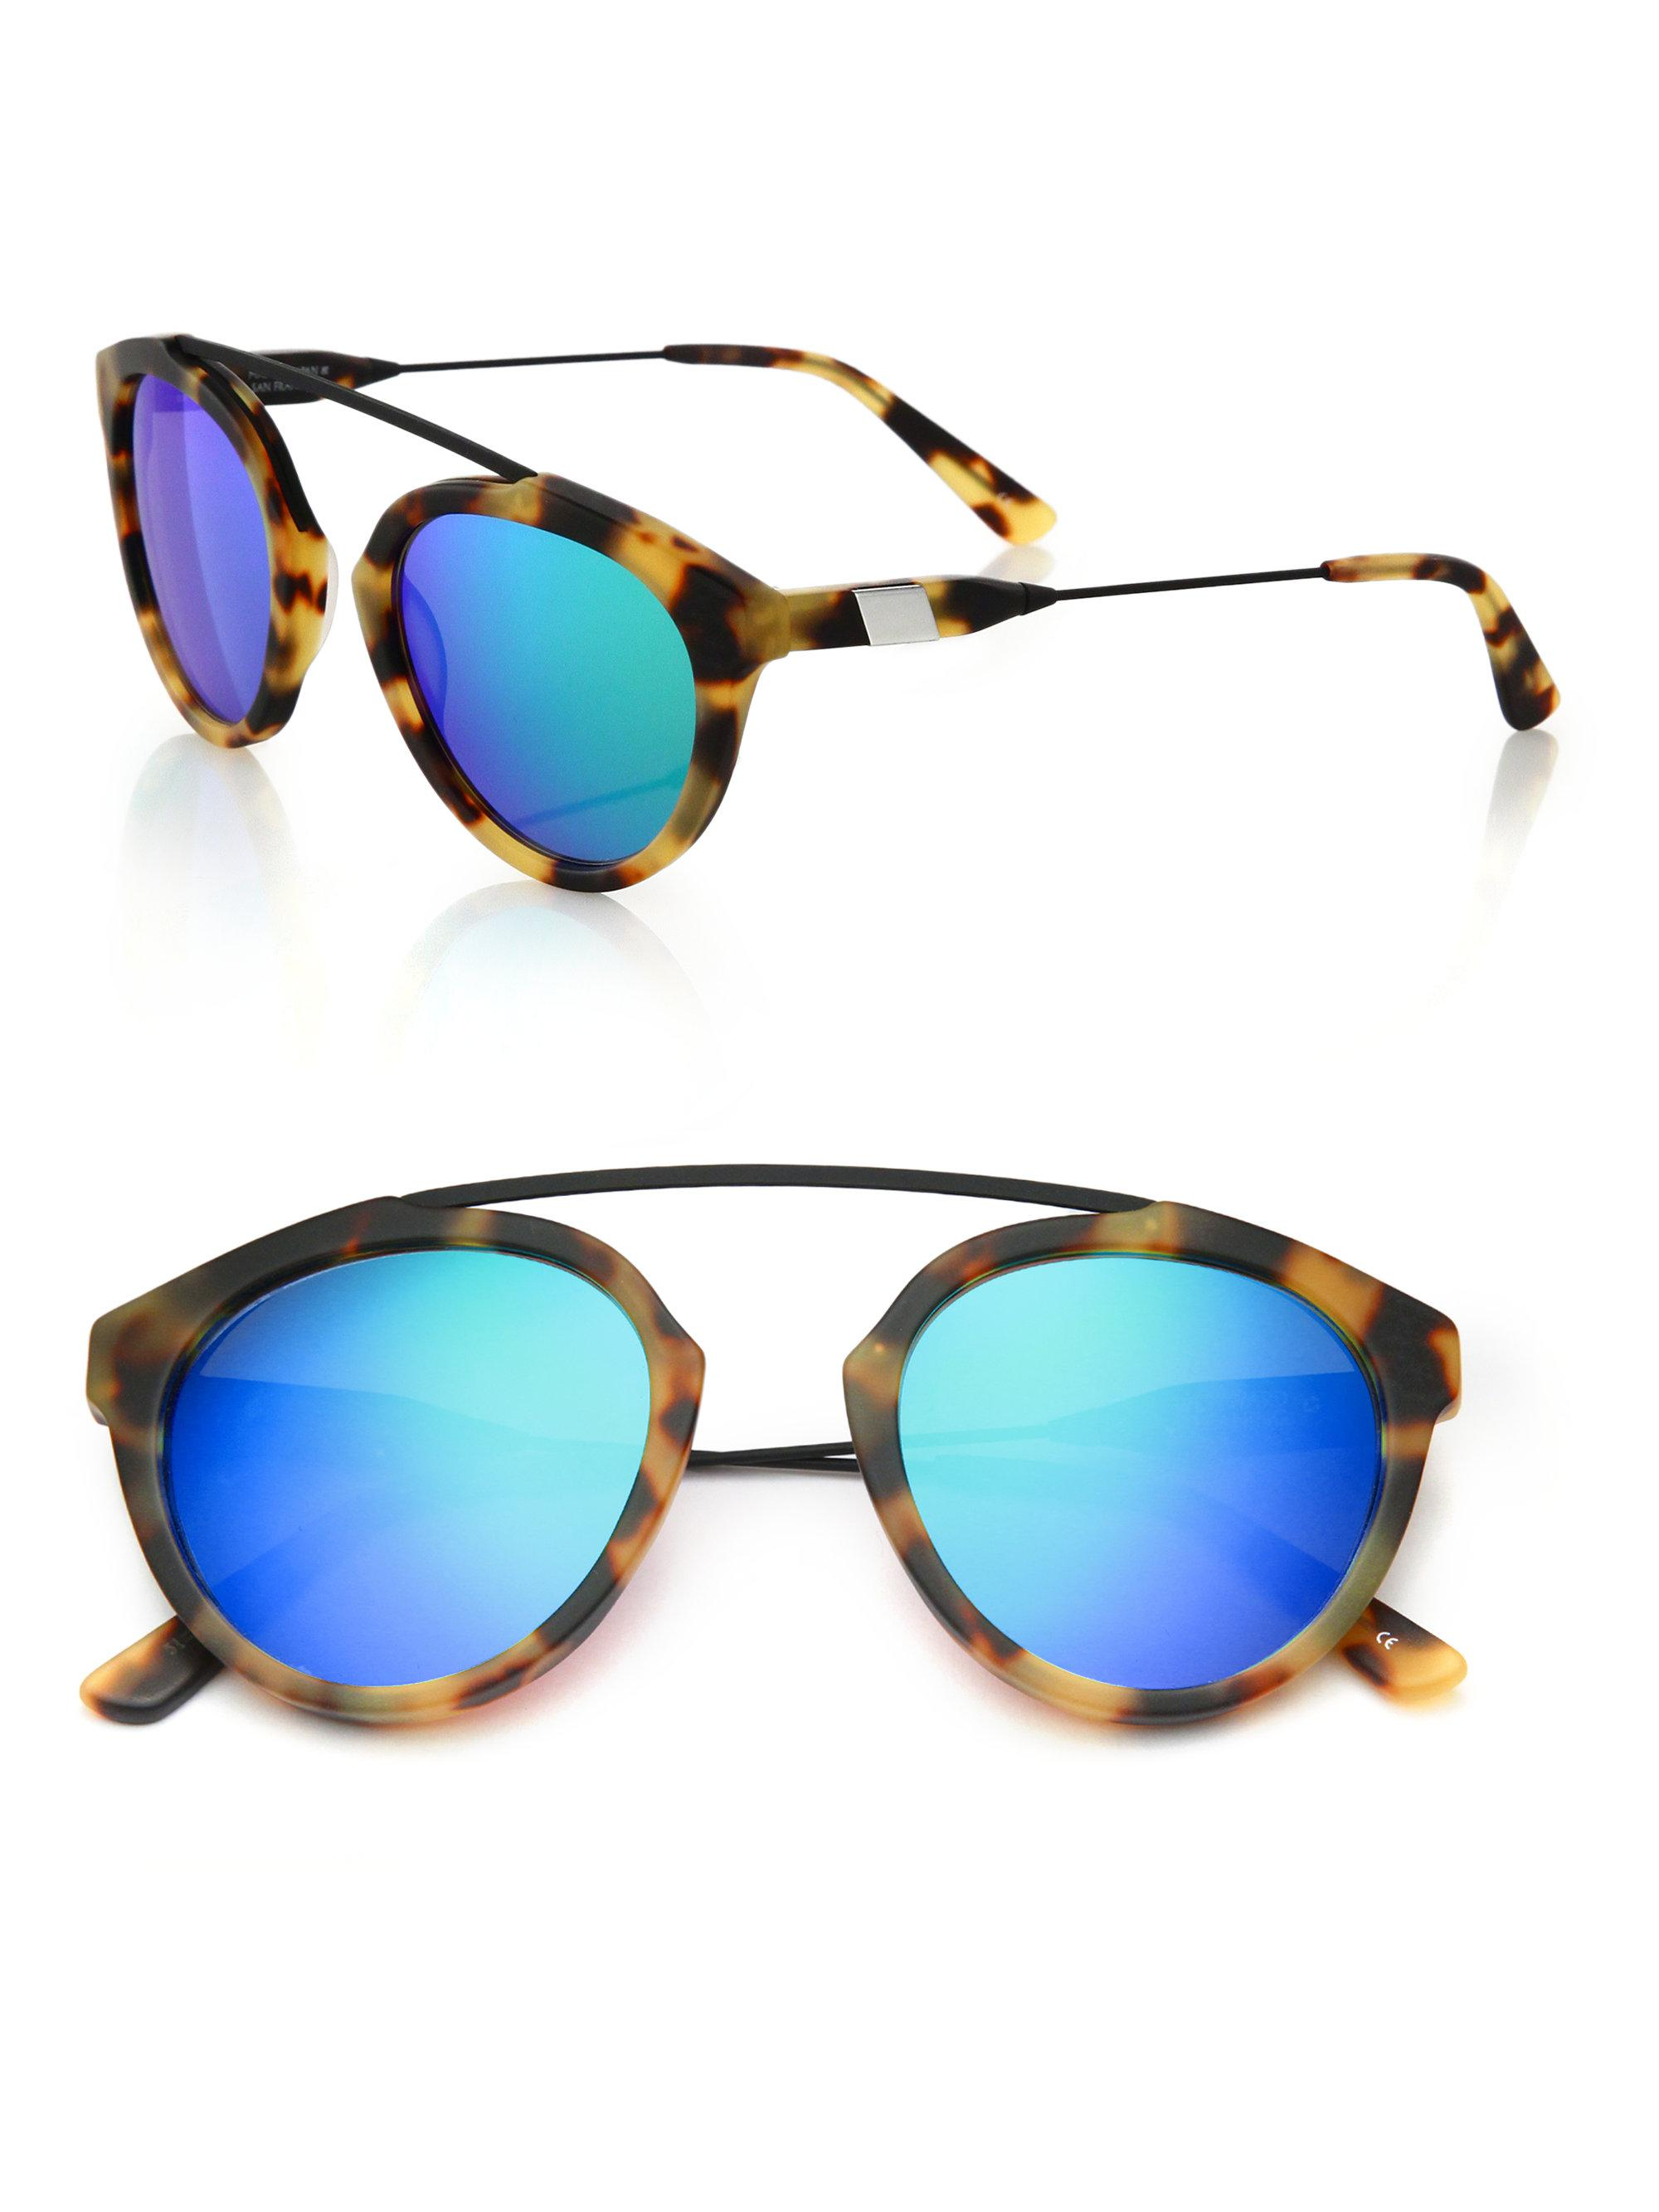 Flower sunglasses - Blue Westward Leaning OPzKeDD